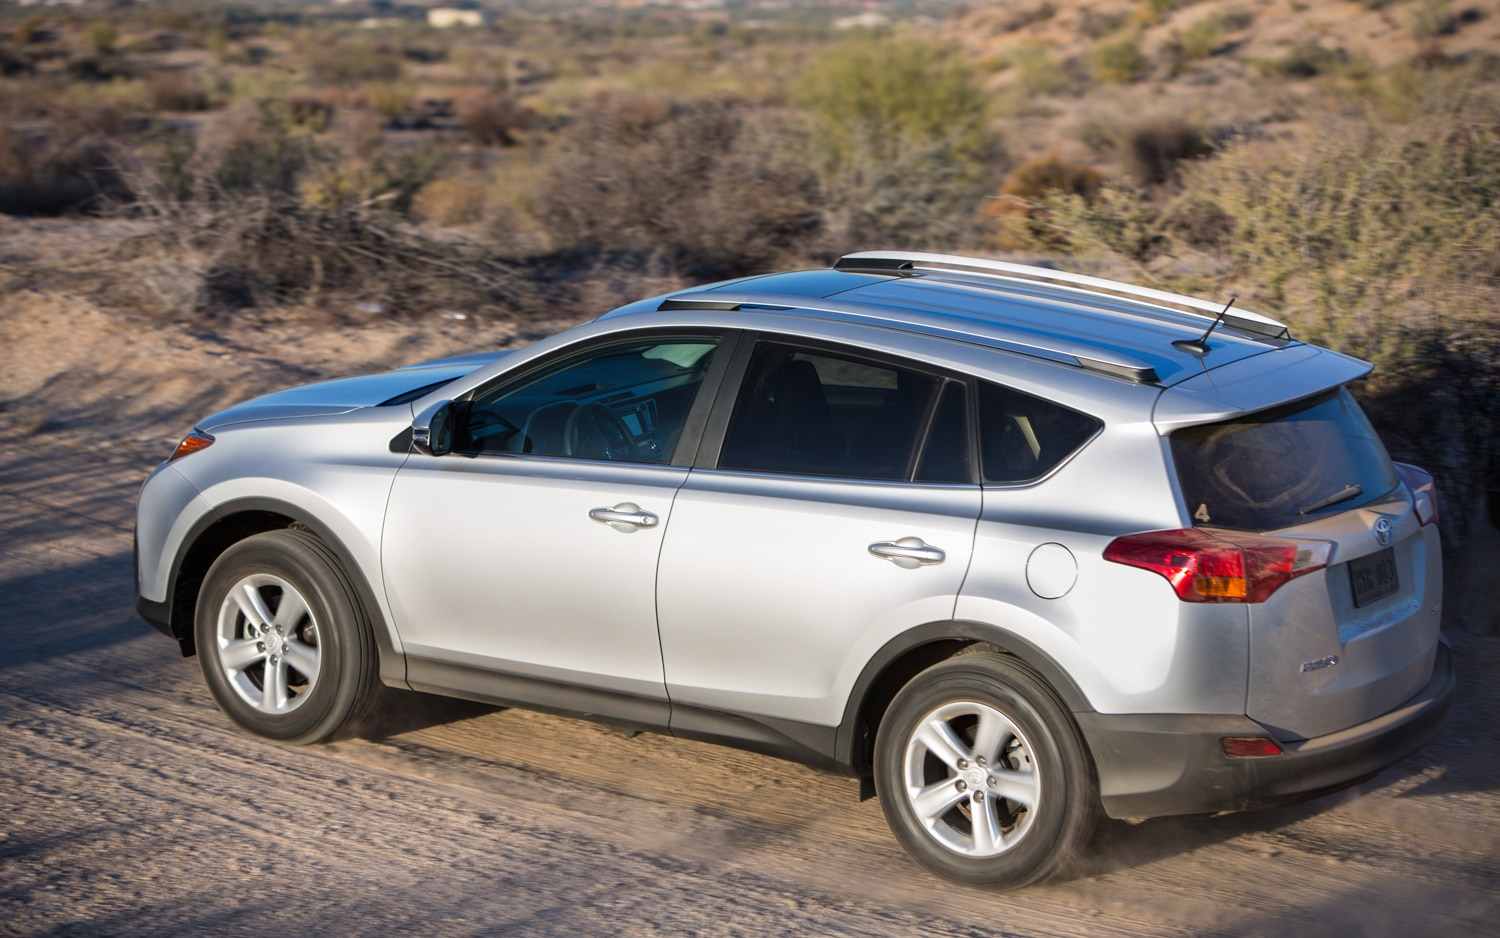 2013 Toyota RAV4 XLE Rear View In Motion